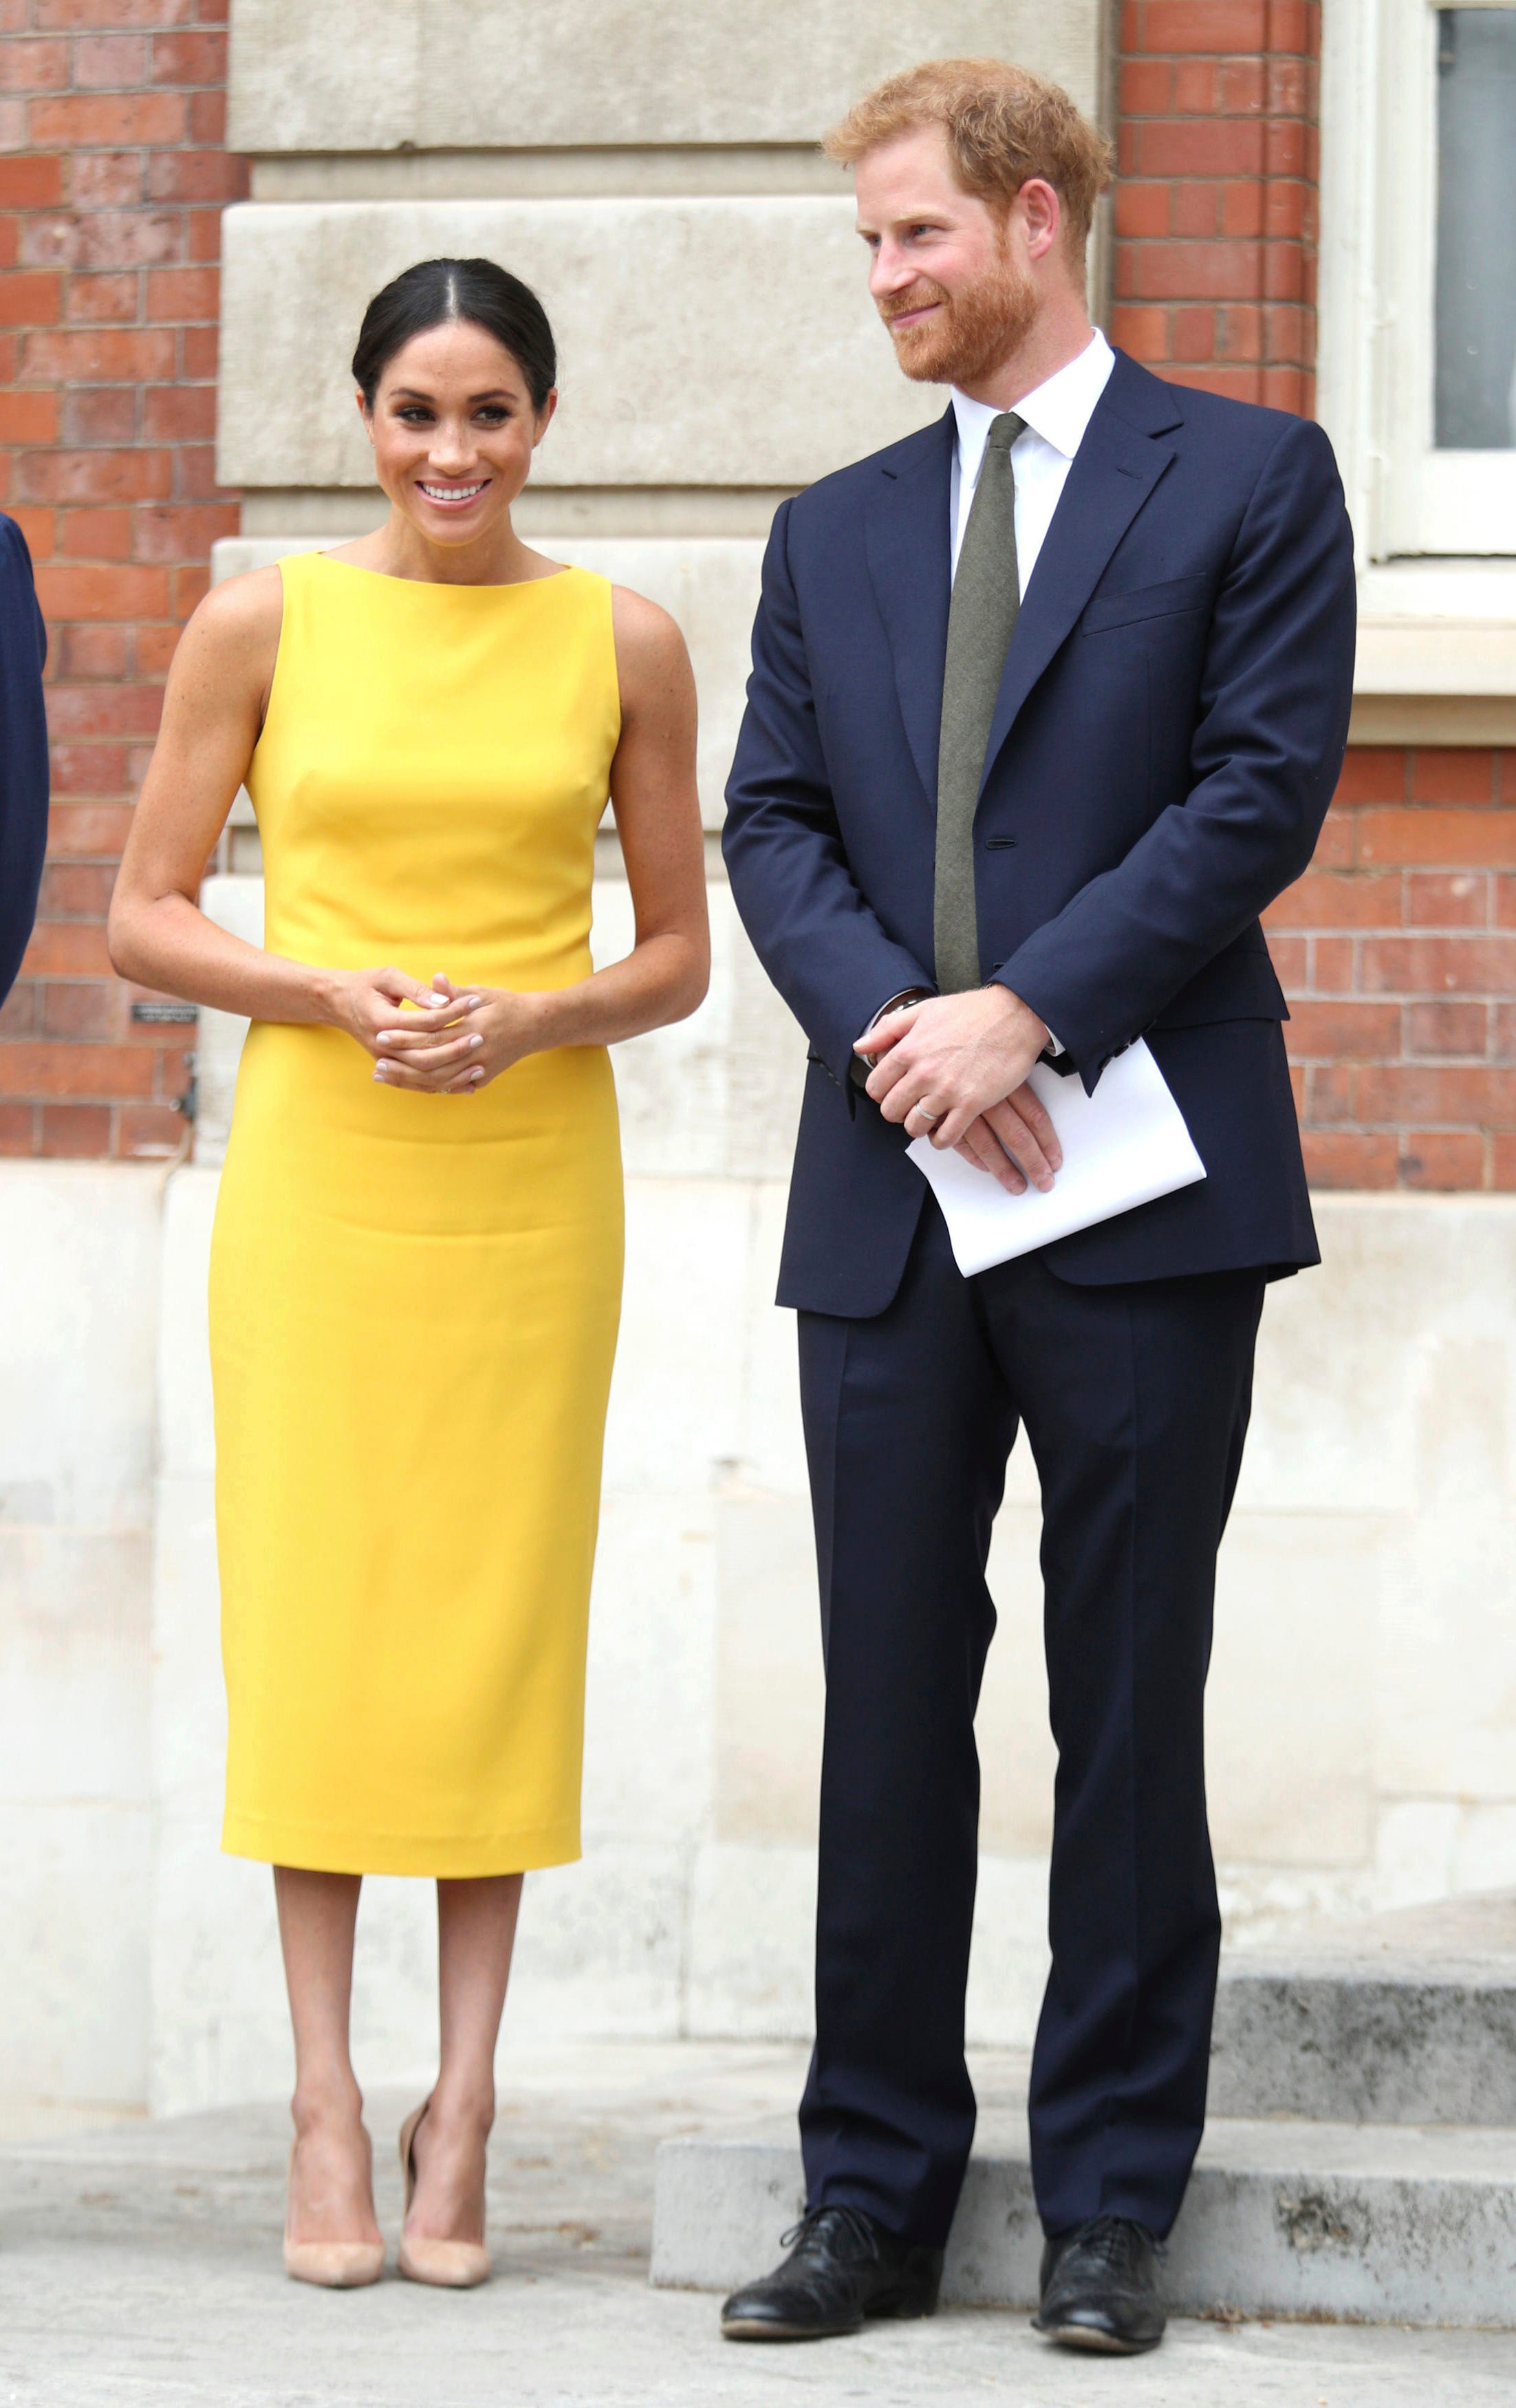 864560127bb4 http://www.usatoday.com/picture-gallery/life/2018/06/11/duchess ...